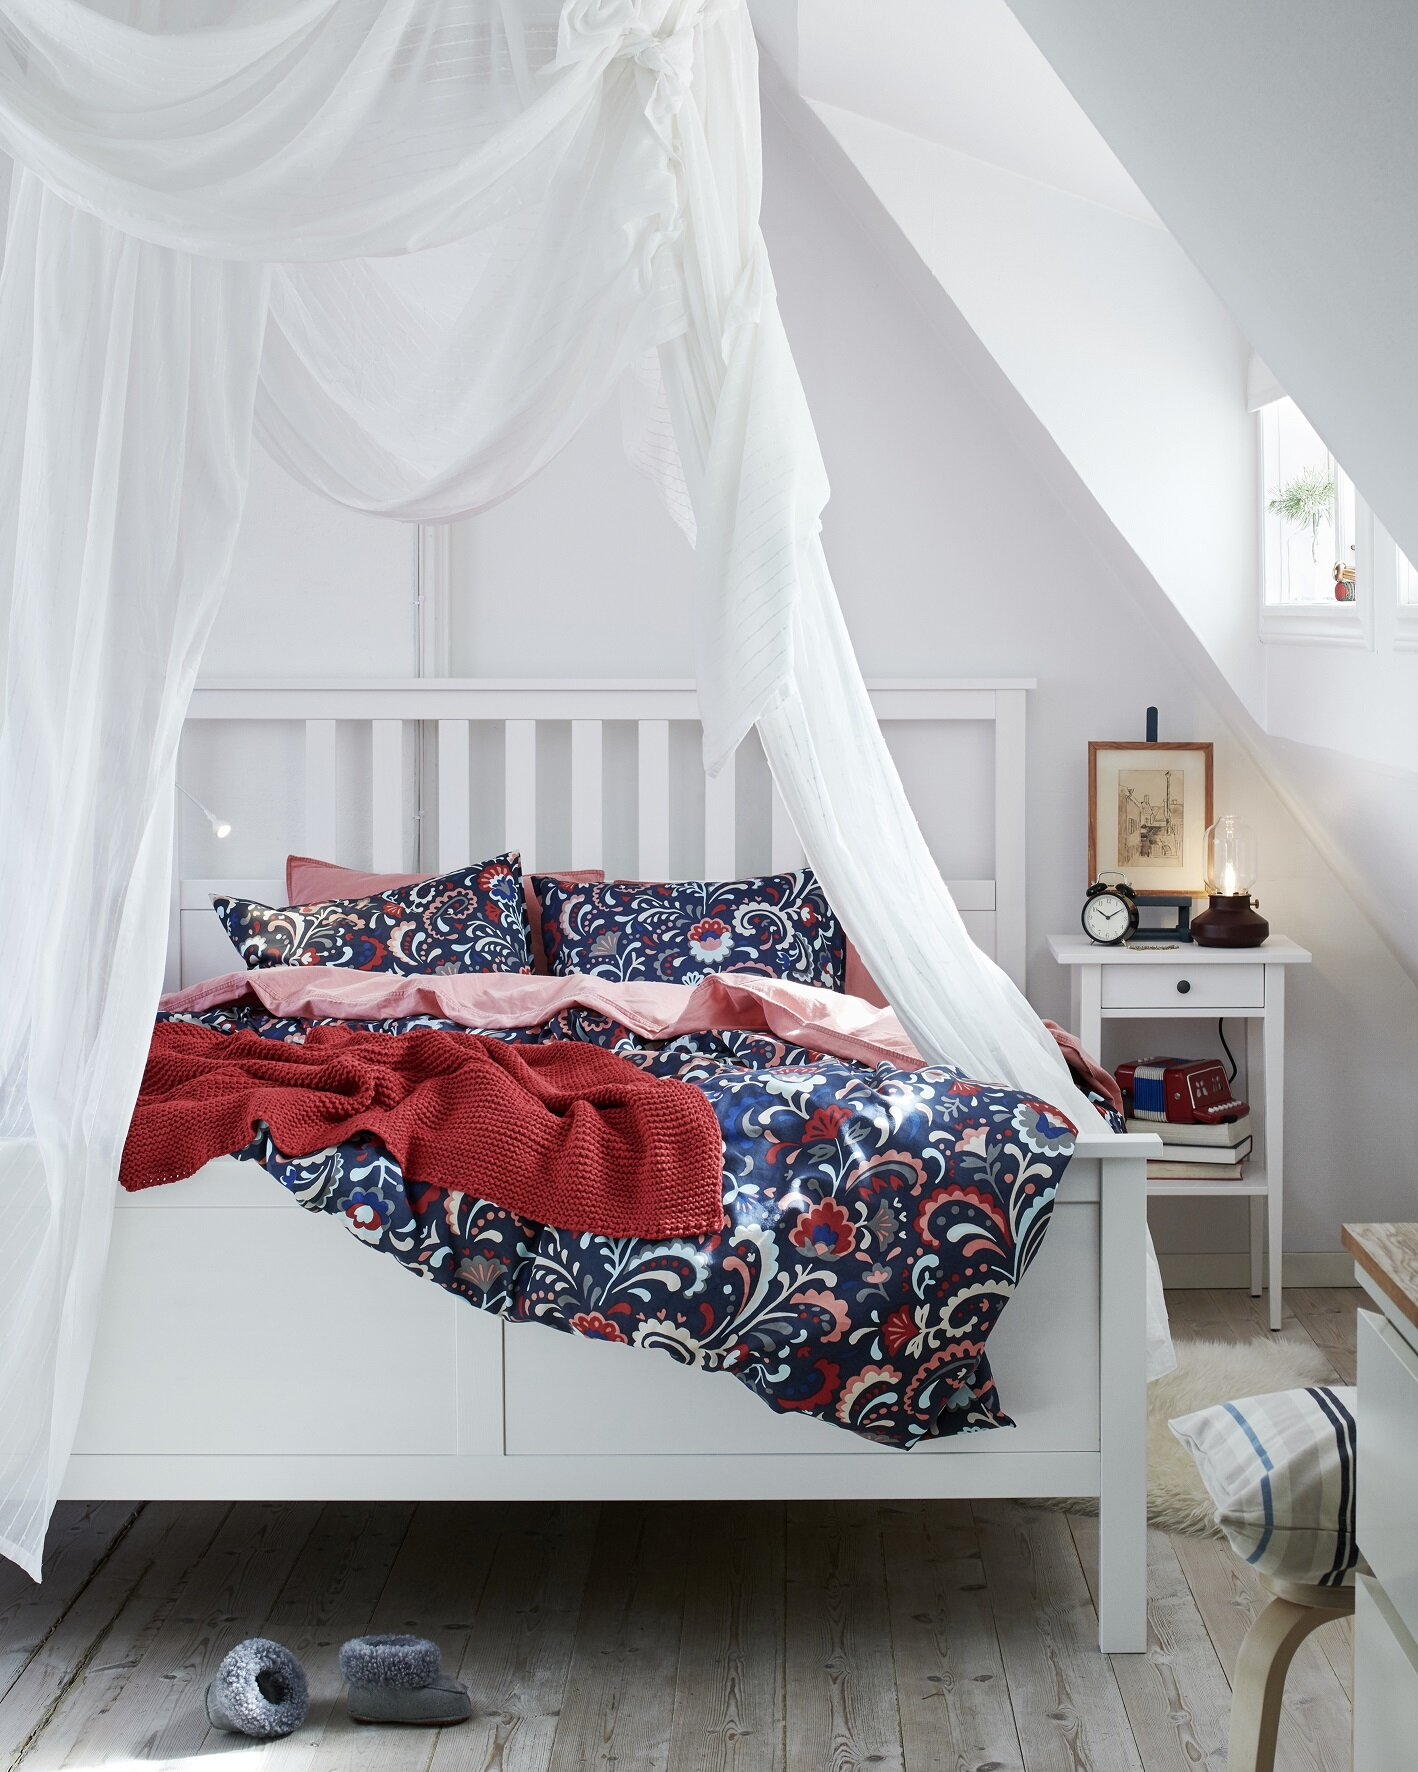 Ikea Christmas Collection 2019 An Extra Winter Collection The Nordroom